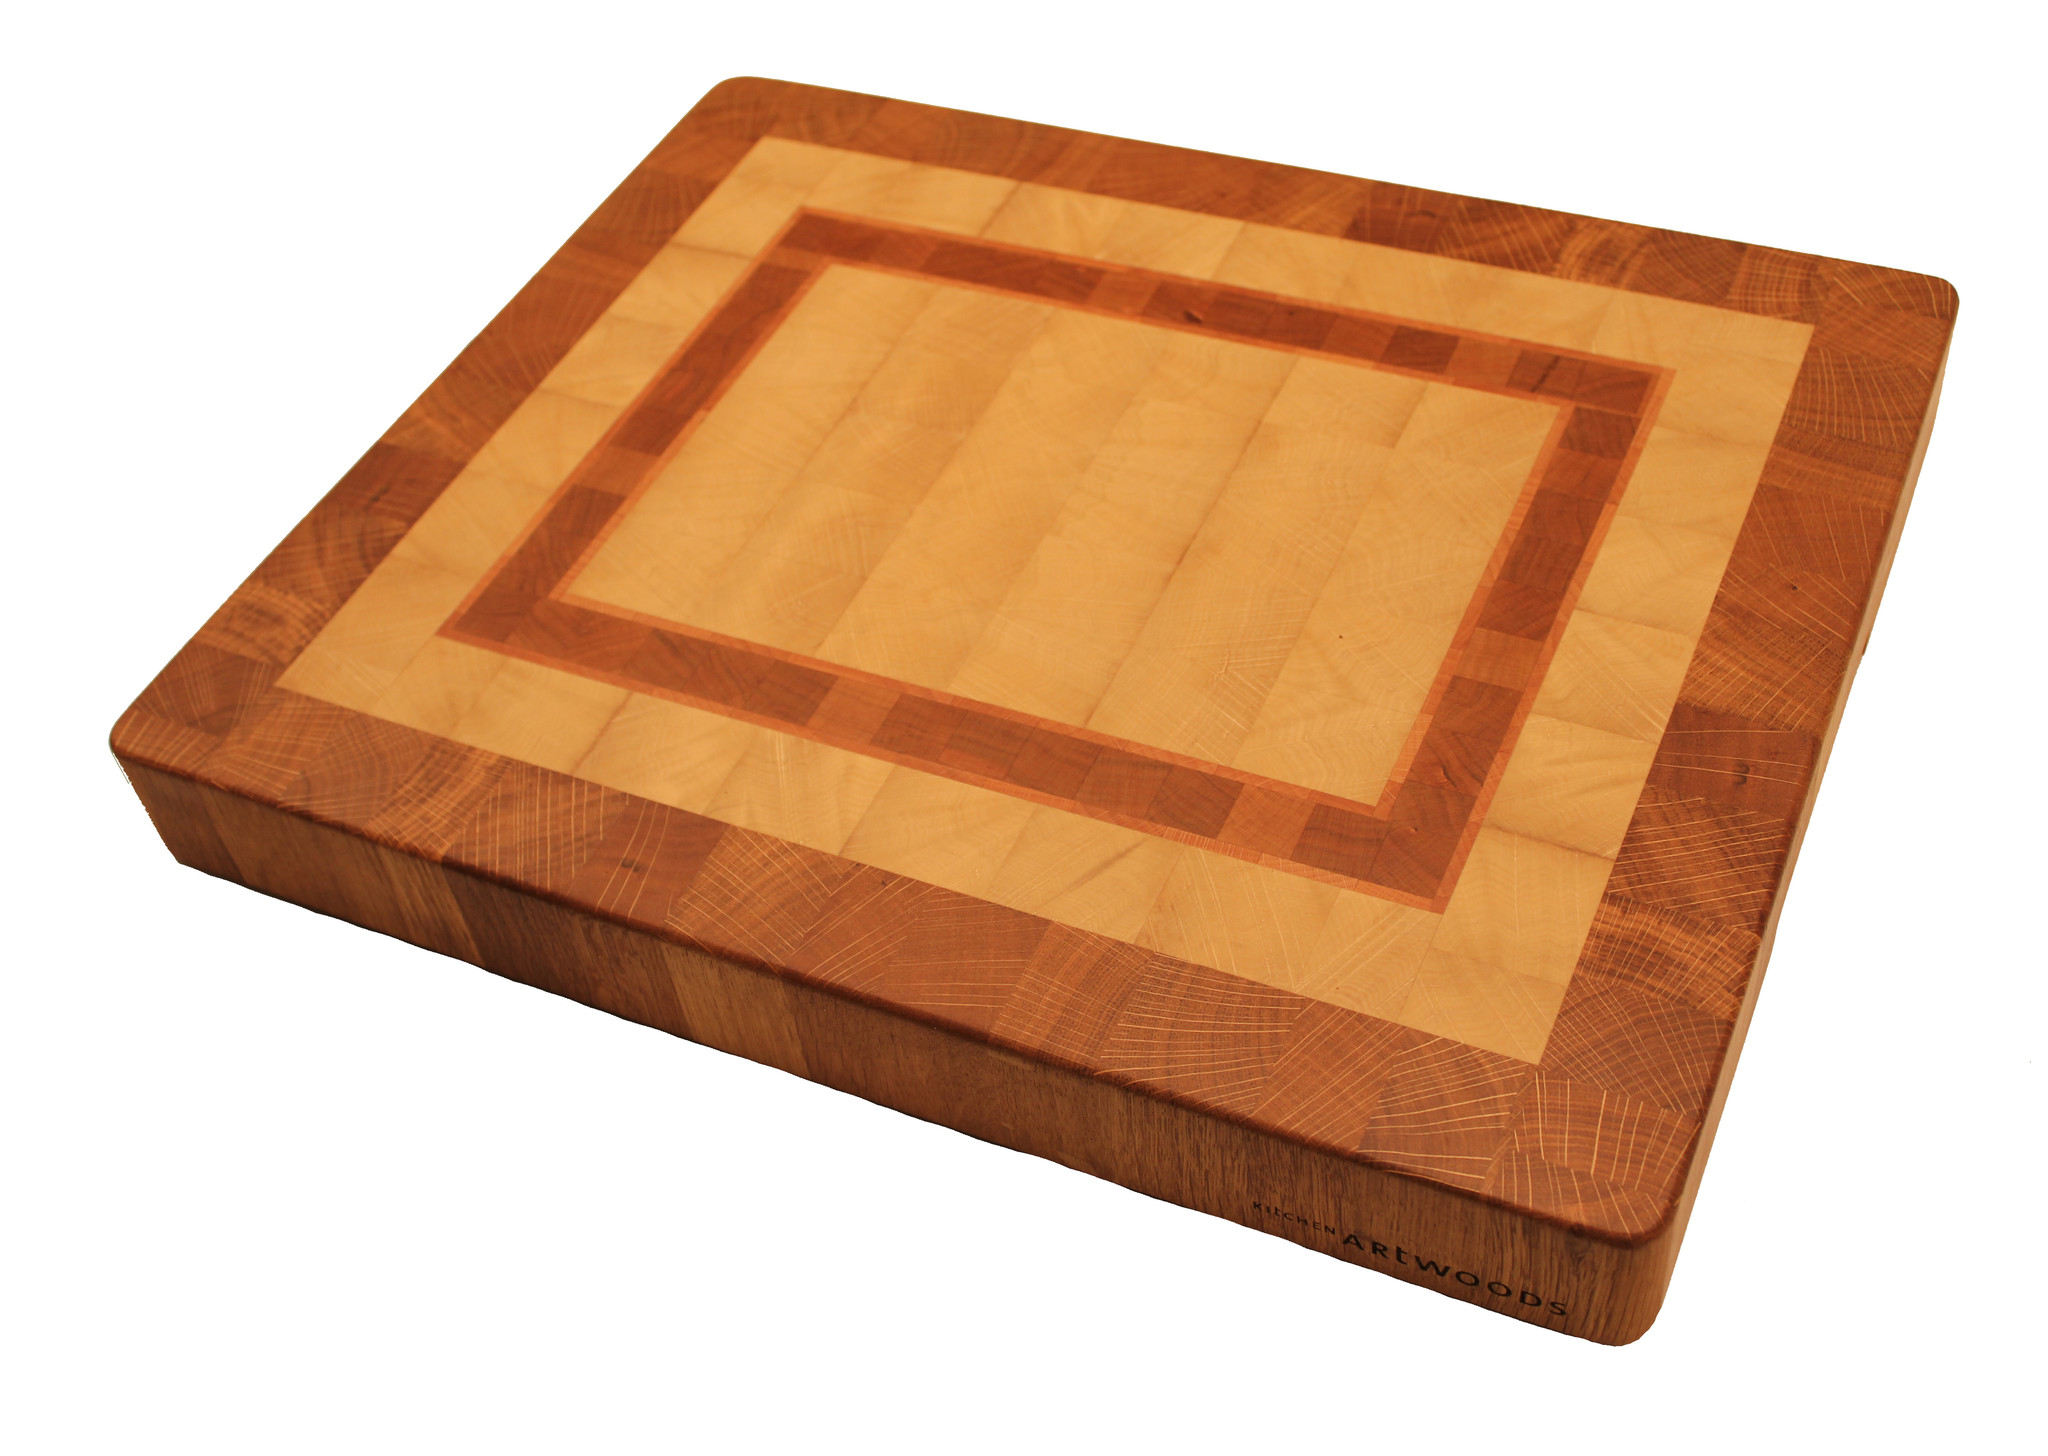 end grain cuttingboard made of hornbeam with a galloon of cherry and beech and a rim of oak